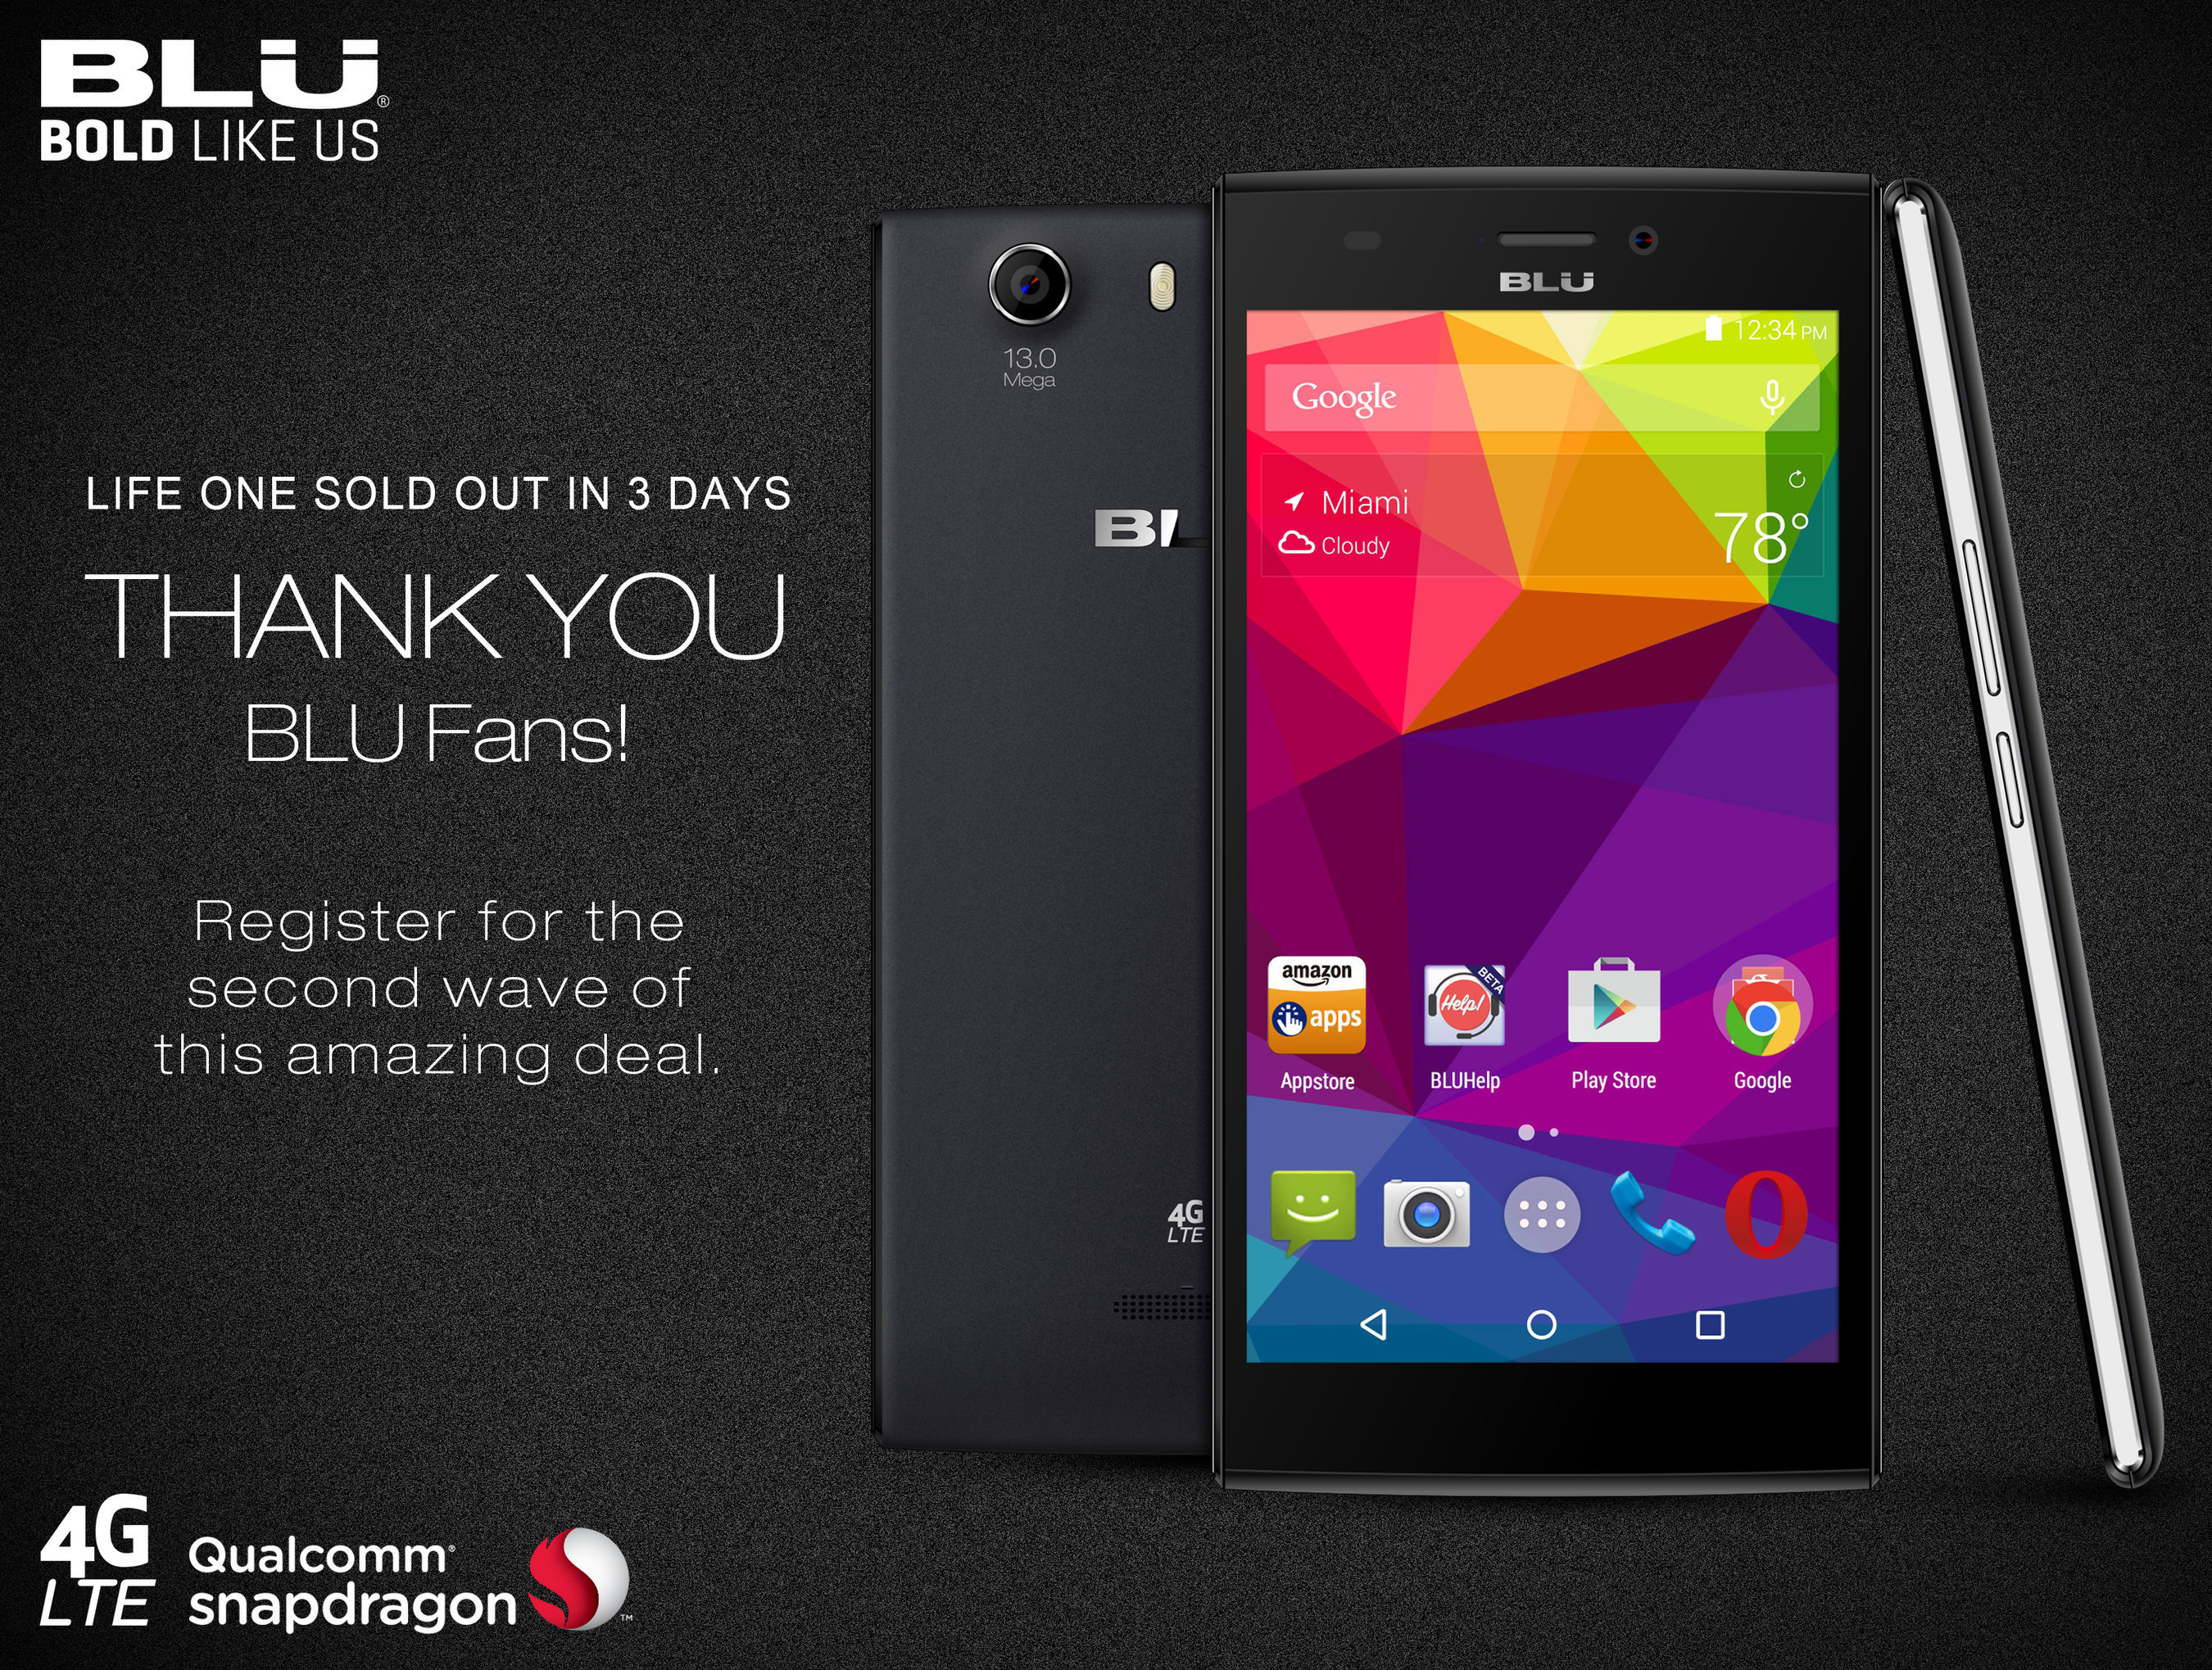 BLU Products Announces First Production Of BLU Life One Sold Out In Just 3 Days On Amazon! To Meet Consumer Demand, Second Chance Sale To Continue.